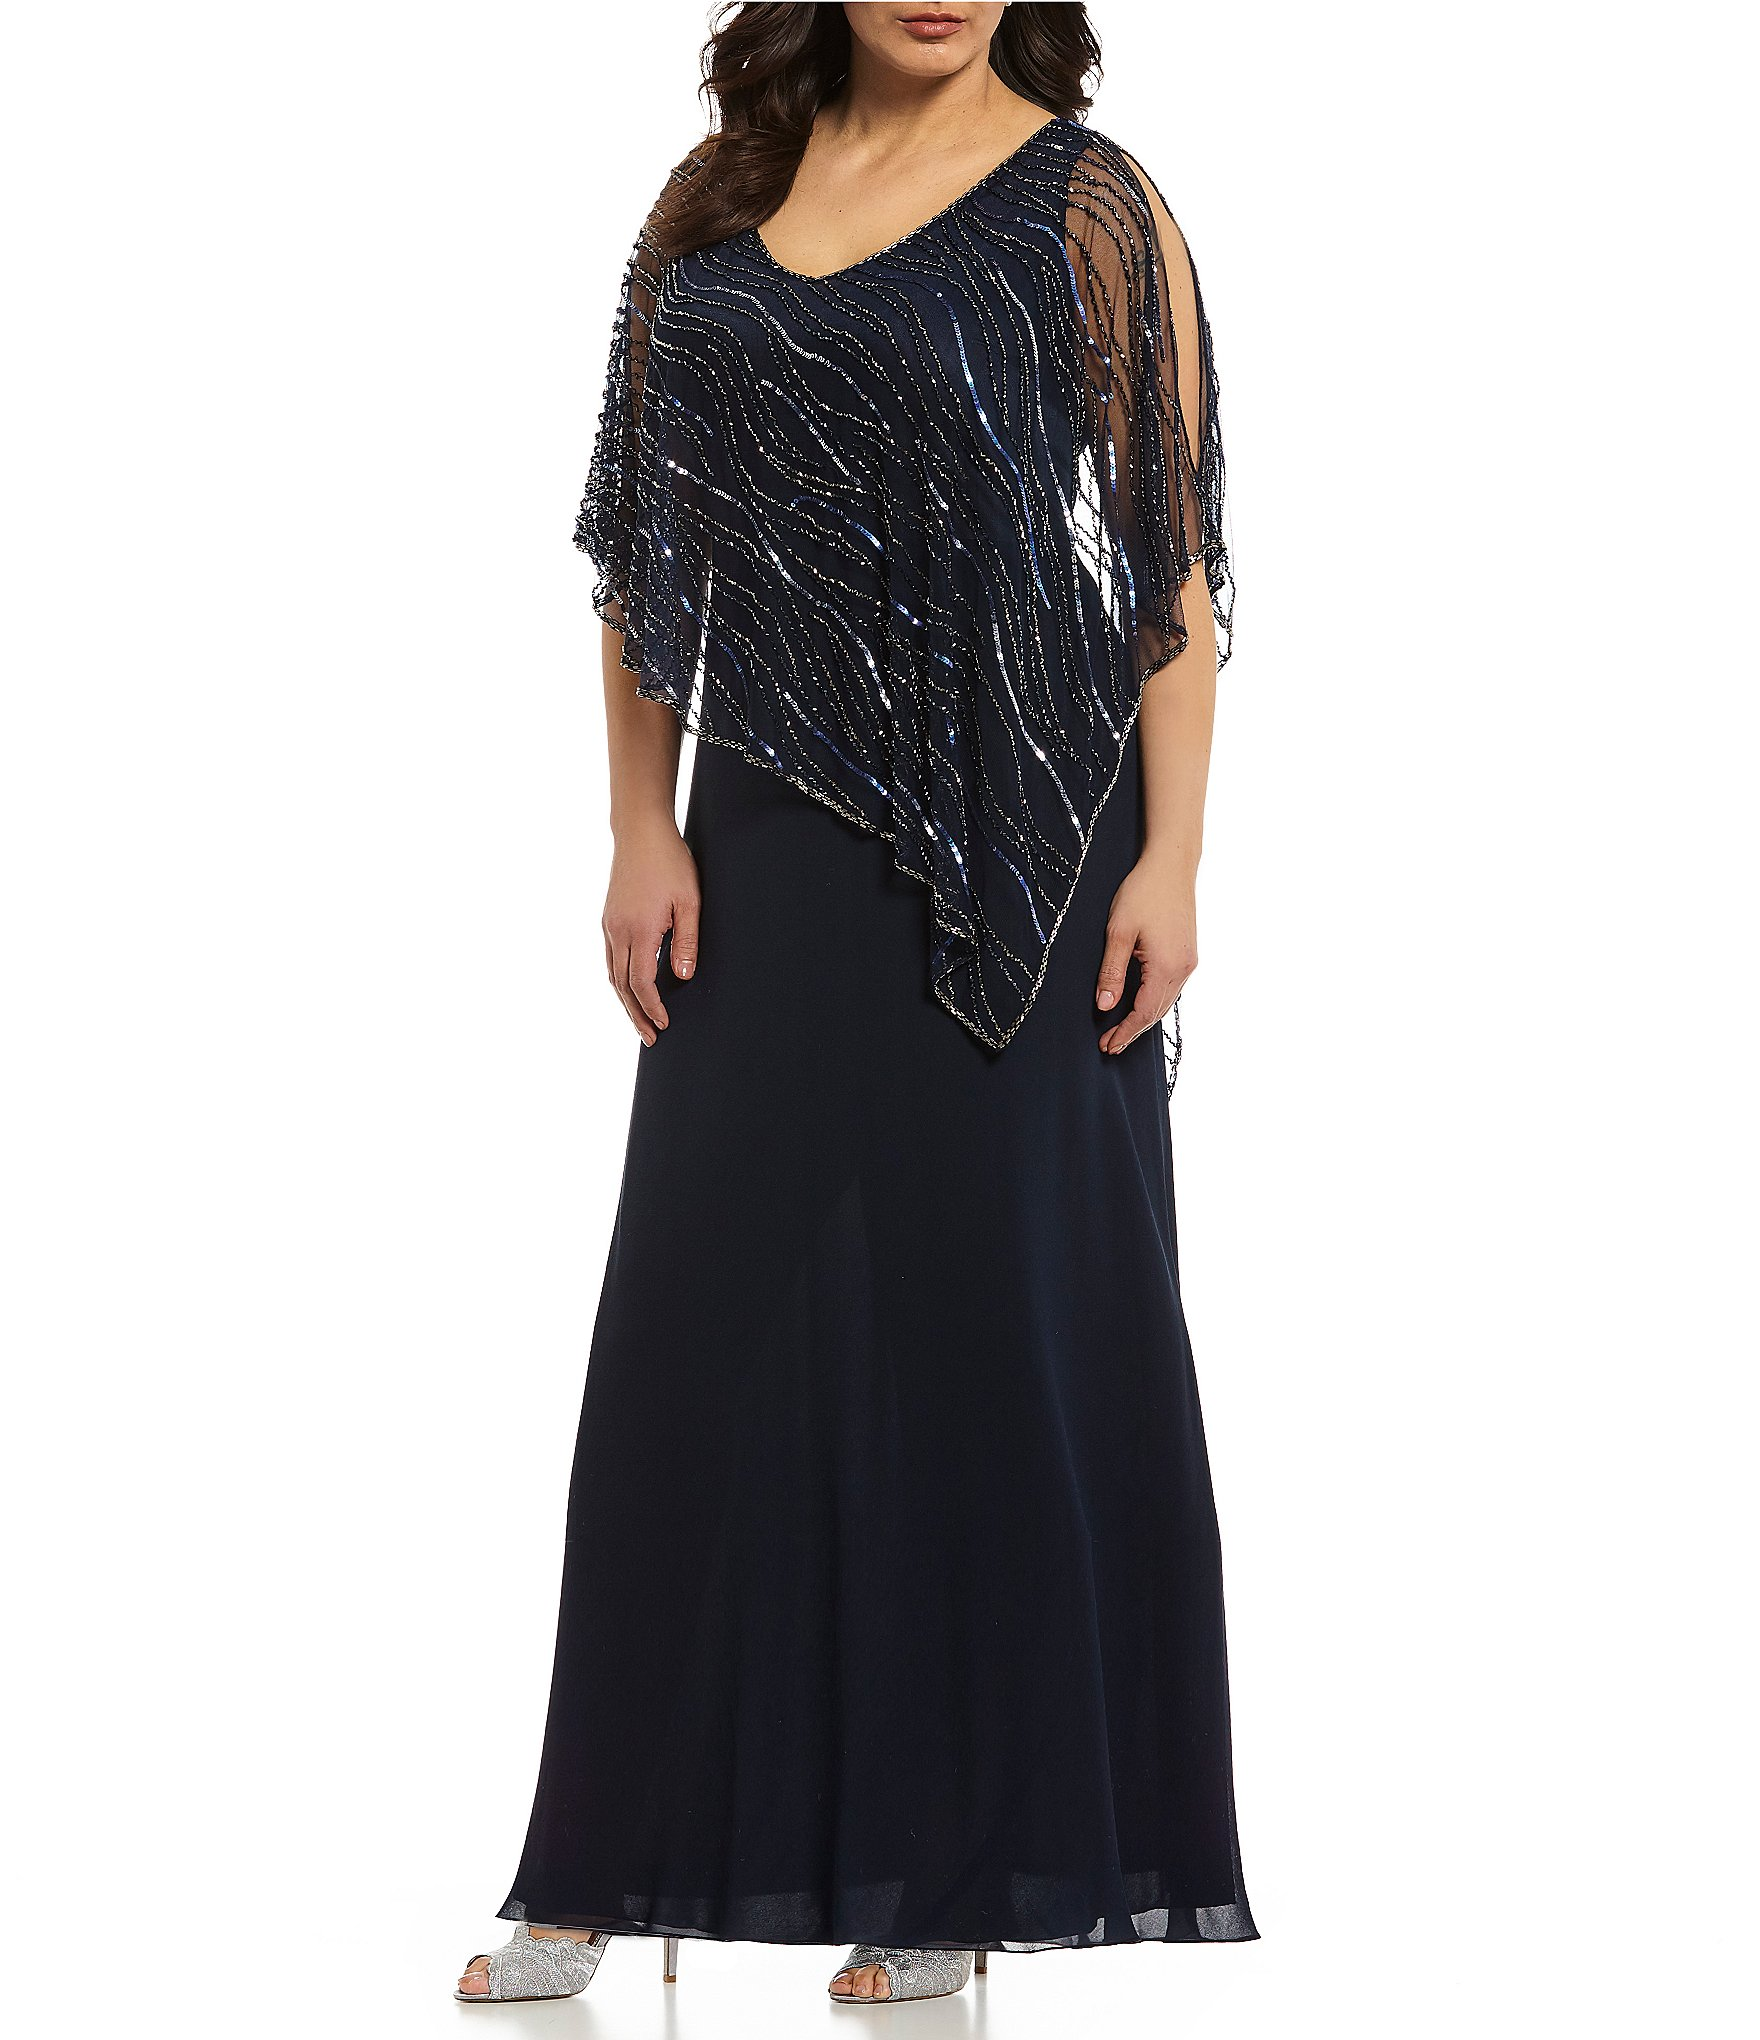 cfd46c9f968 Plus-Size Formal Dresses   Gowns